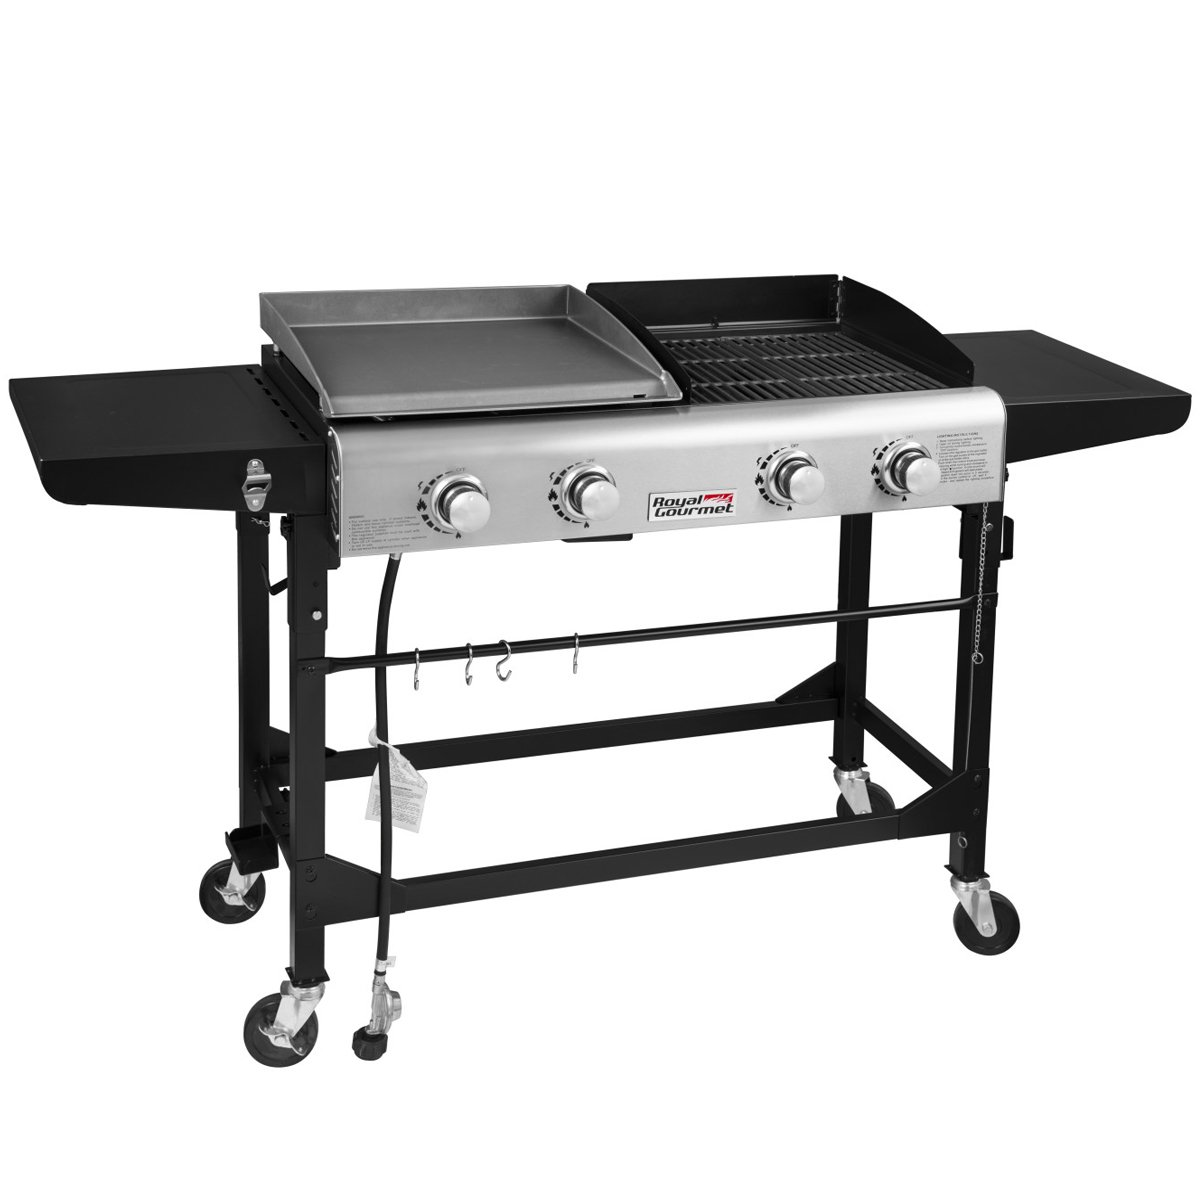 Royal Gourmet Portable Propane Gas Grill and Griddle Combo,4-Burner,Griddle Flat Top, Folding Legs,Versatile Outdoor Camping Stove with Side Table by Royal Gourmet